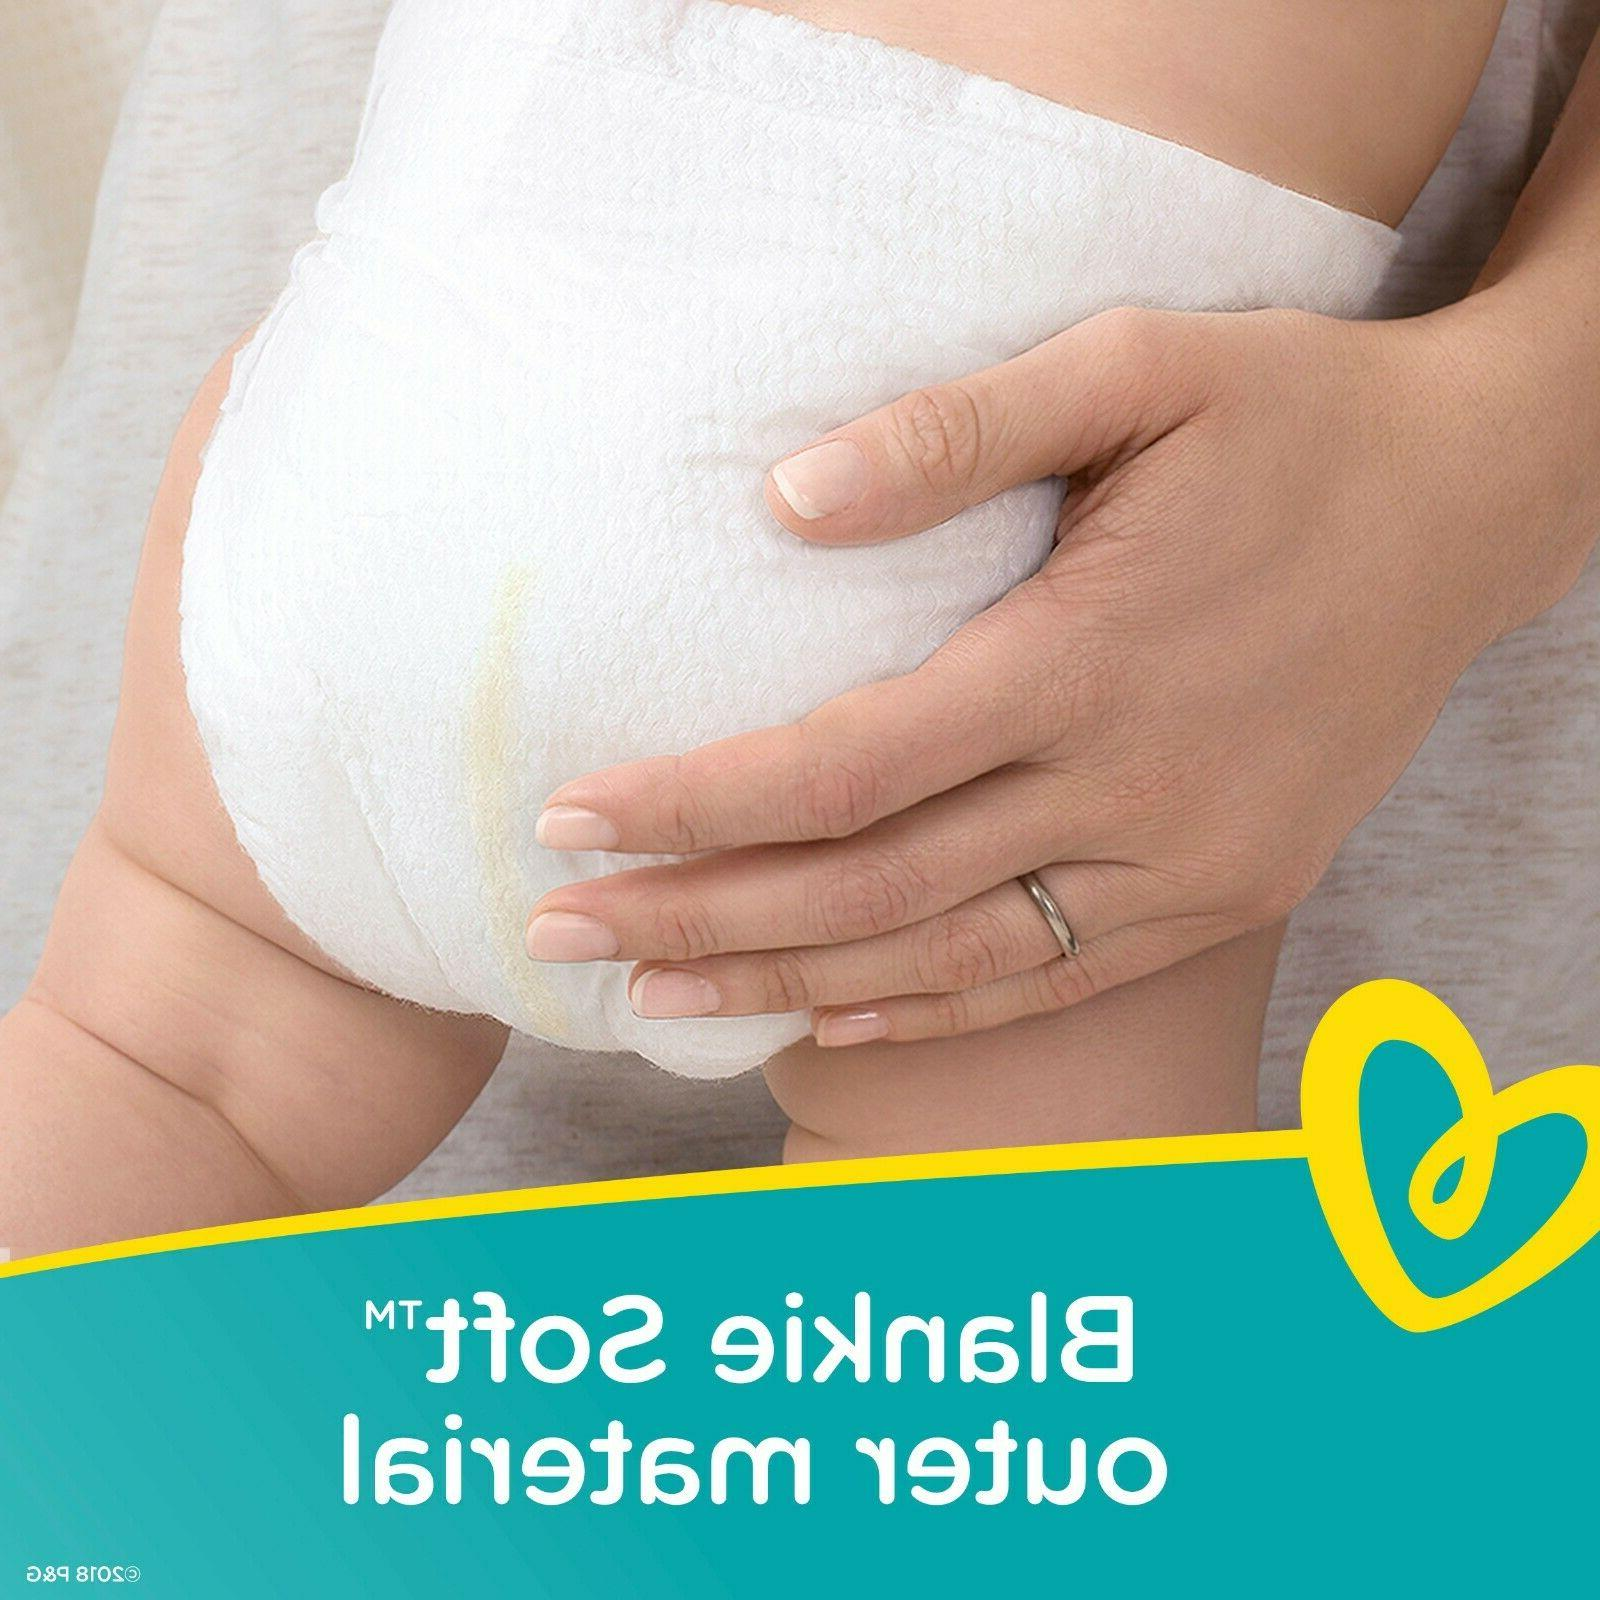 Pampers Swaddlers Diapers 1 2 3 5 50 indicator